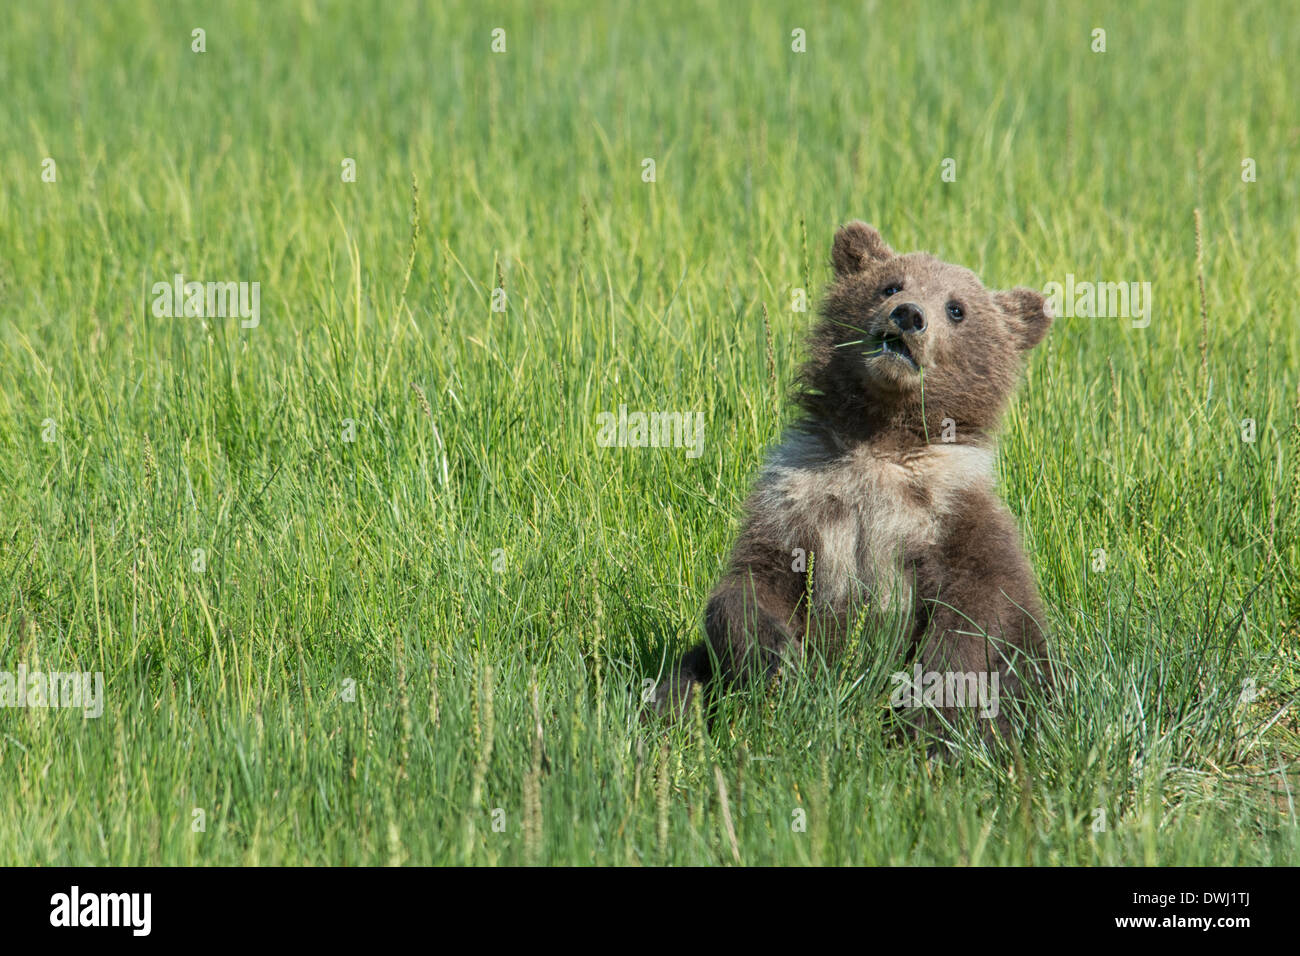 Grizzly Bear Spring Cub with a white collar and spots, Ursus Arctos, eating sedge grass, Lake Clark National Park, Alaska, USA - Stock Image